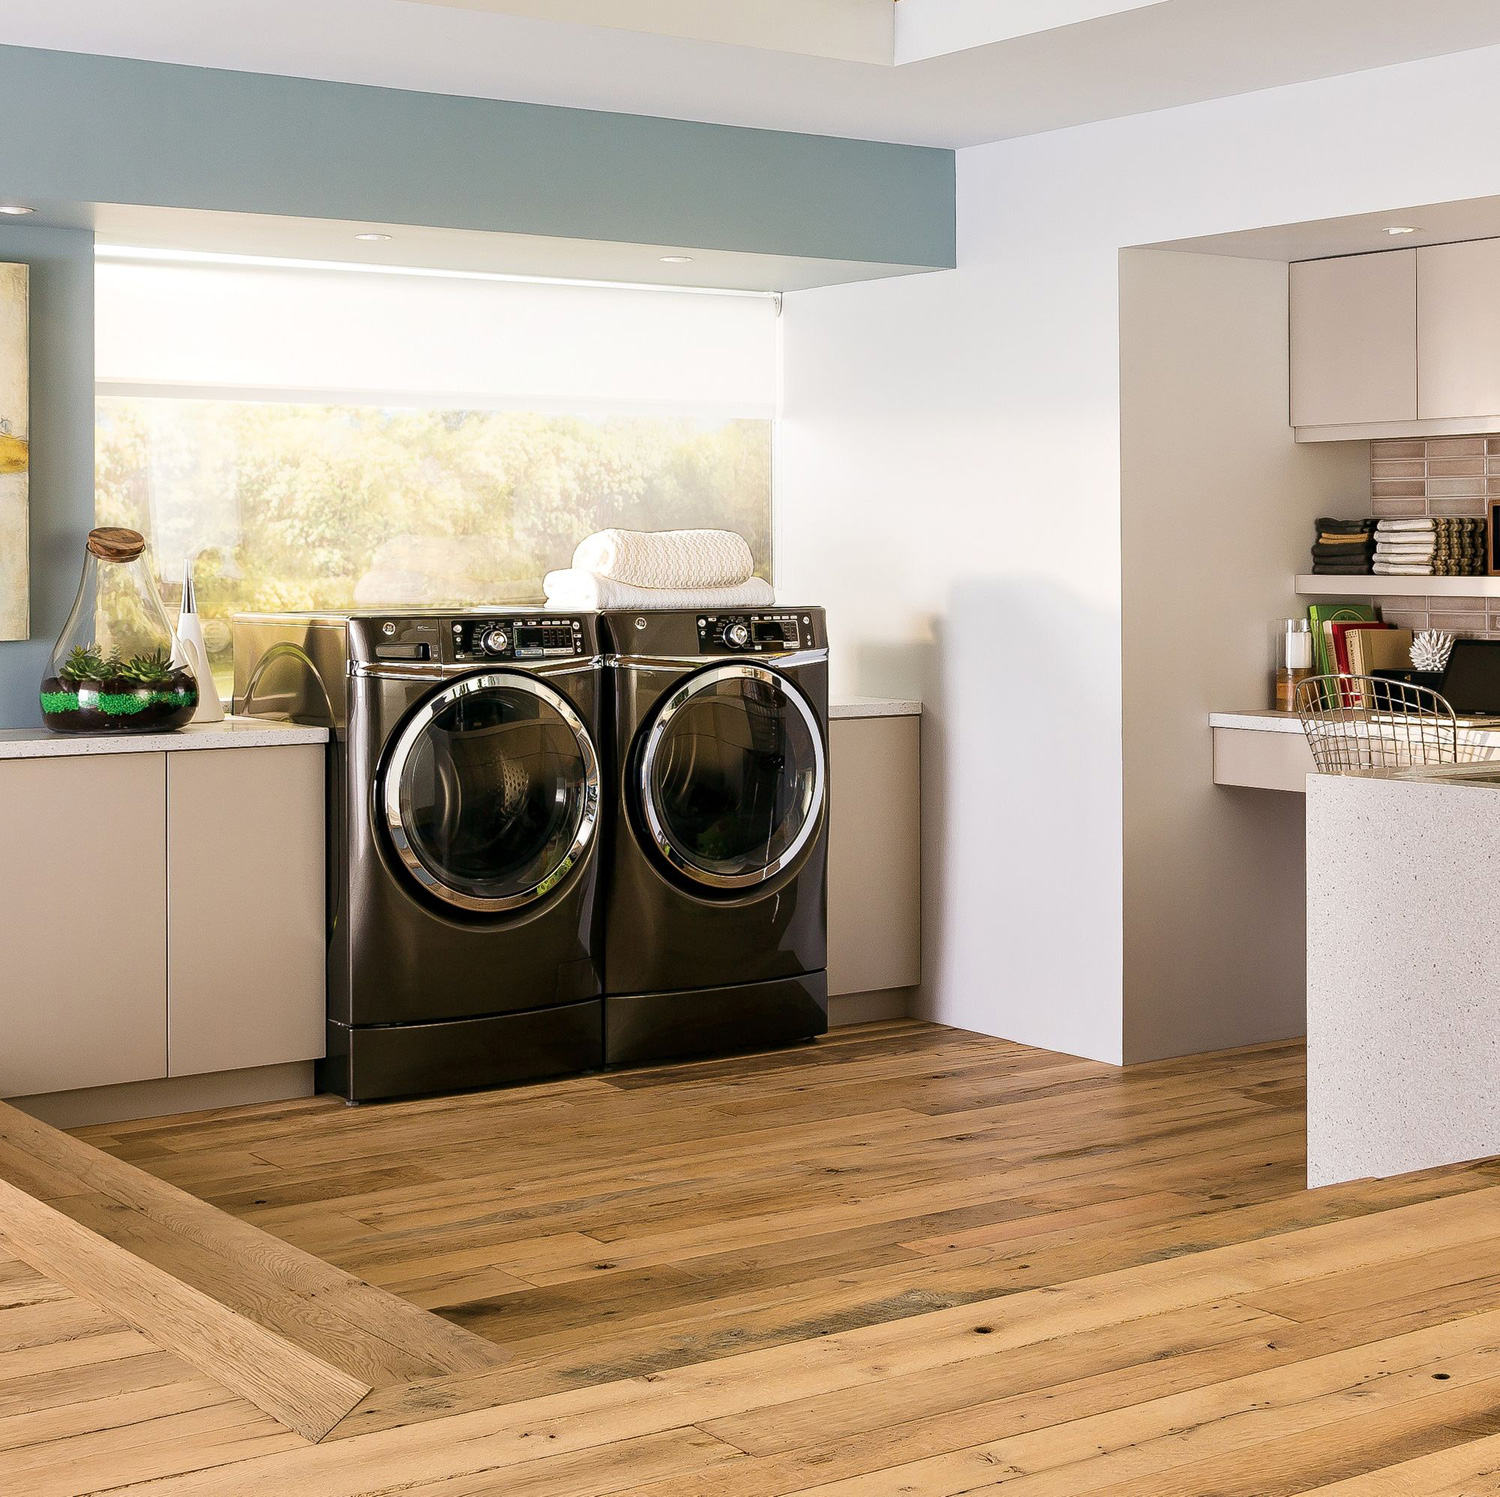 Best GE Washer and Dryer Sets for 2018 [REVIEW]